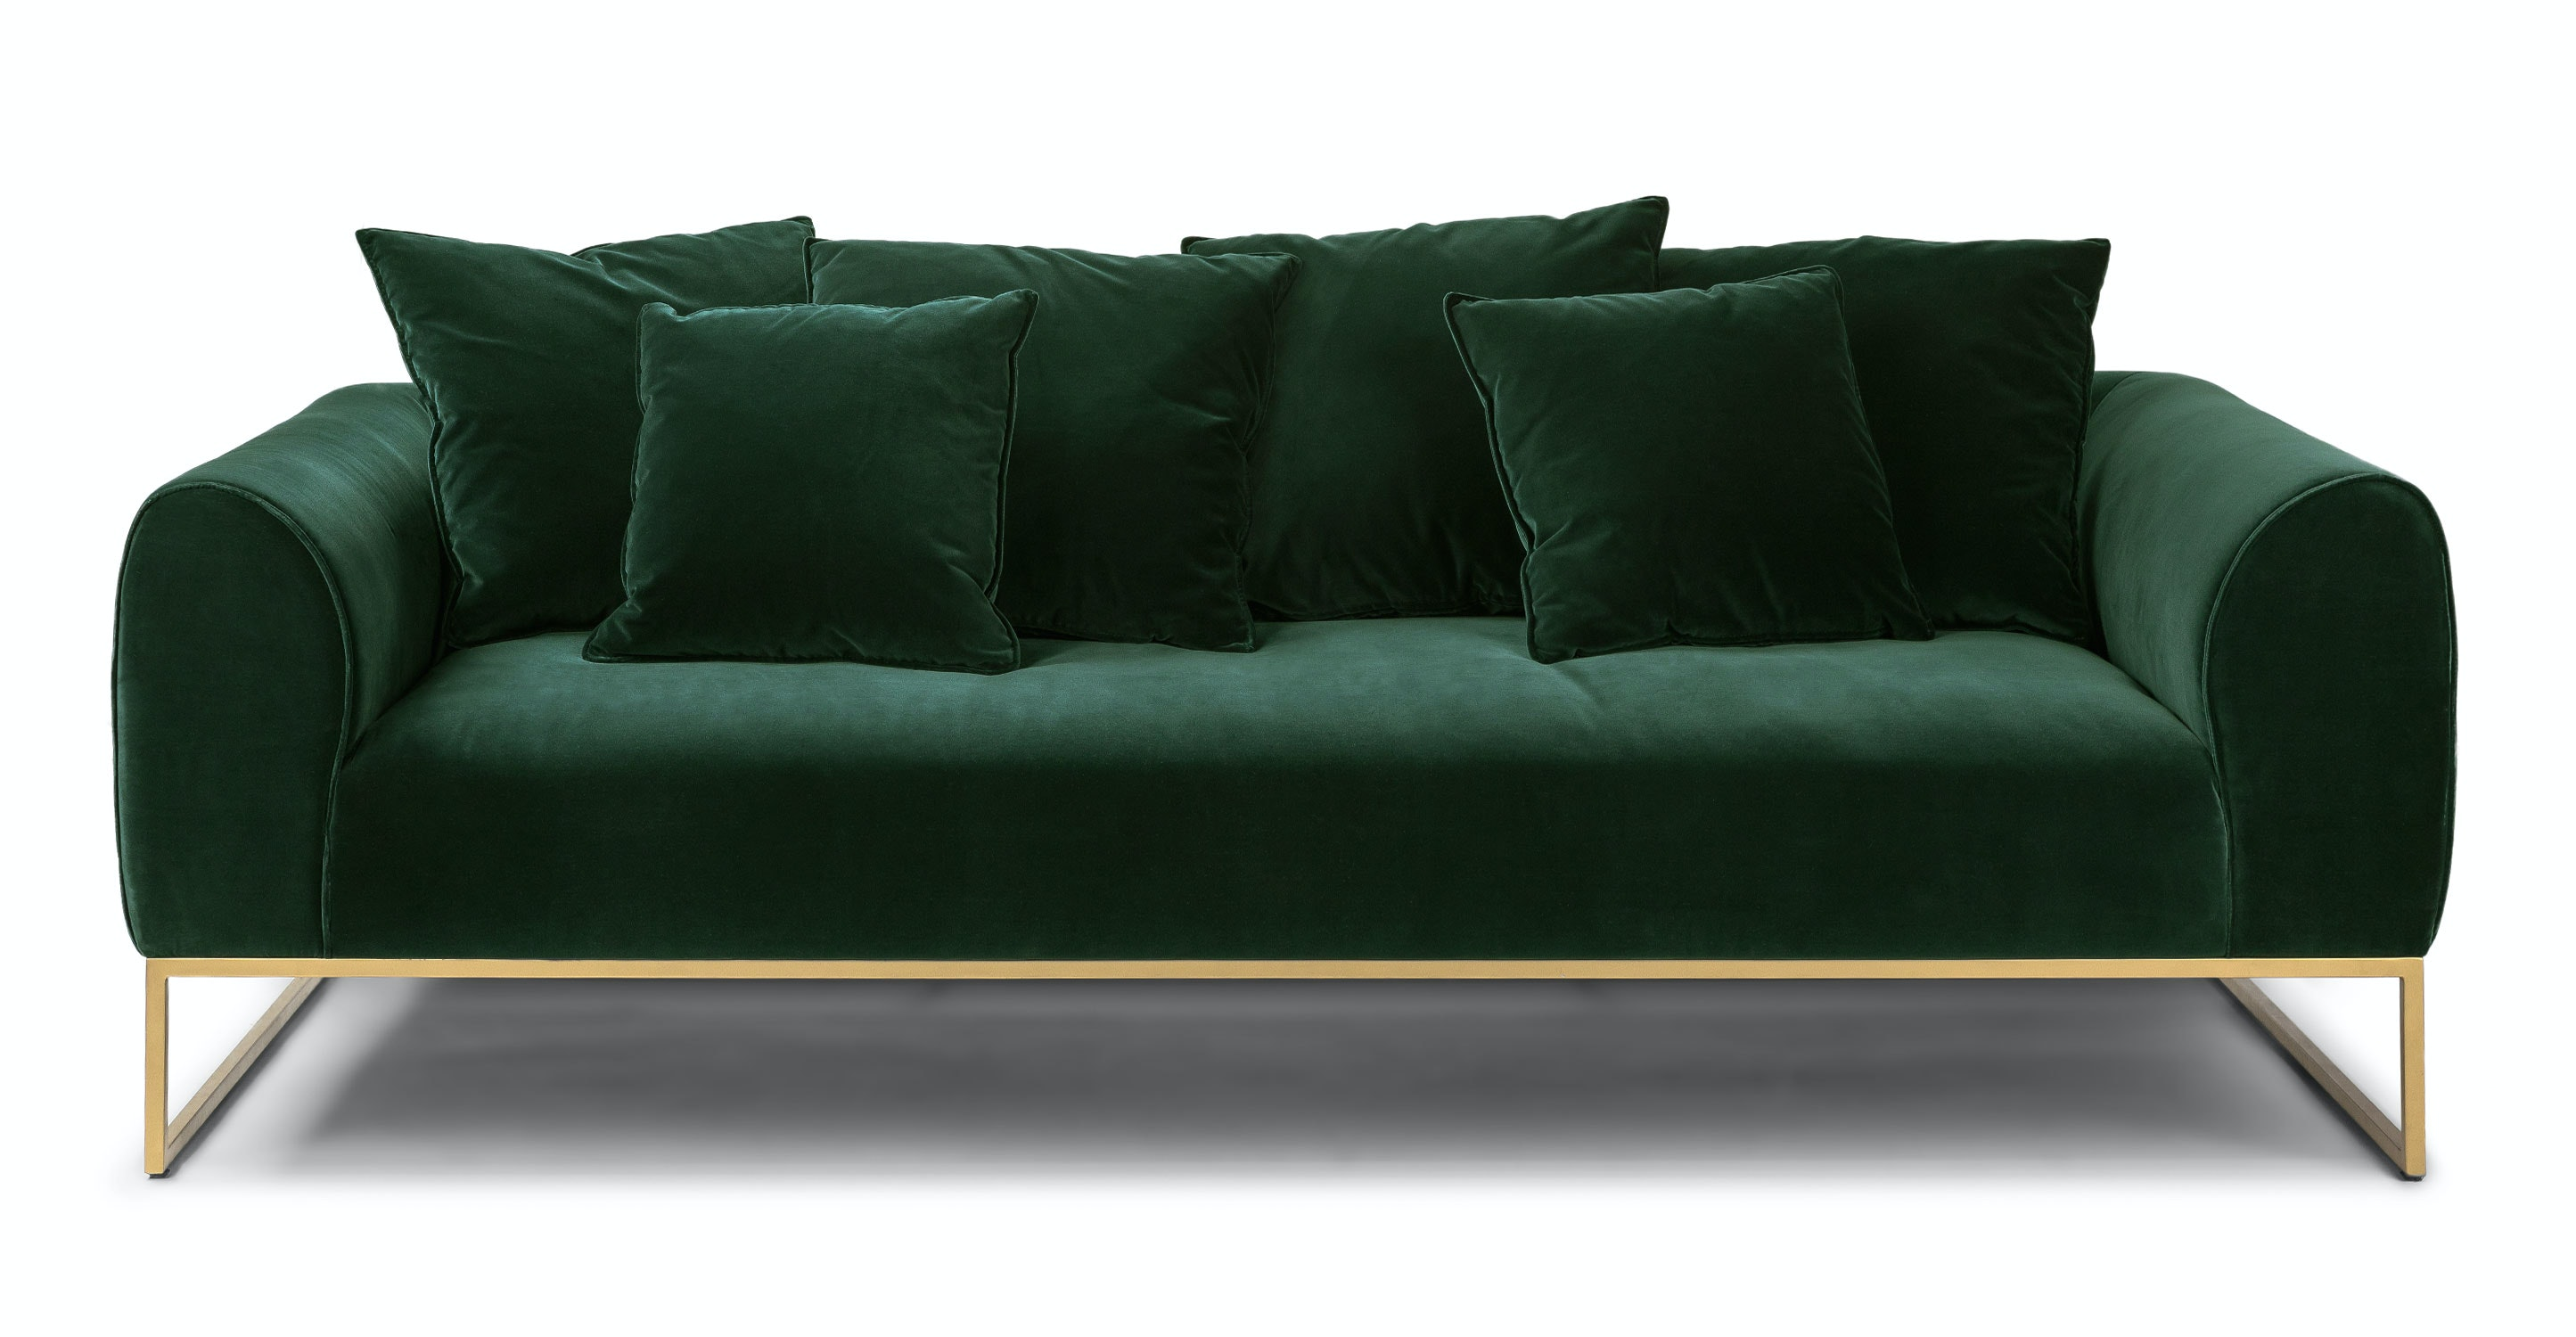 Kits Balsam Green Sofa Sofas Article Modern Mid